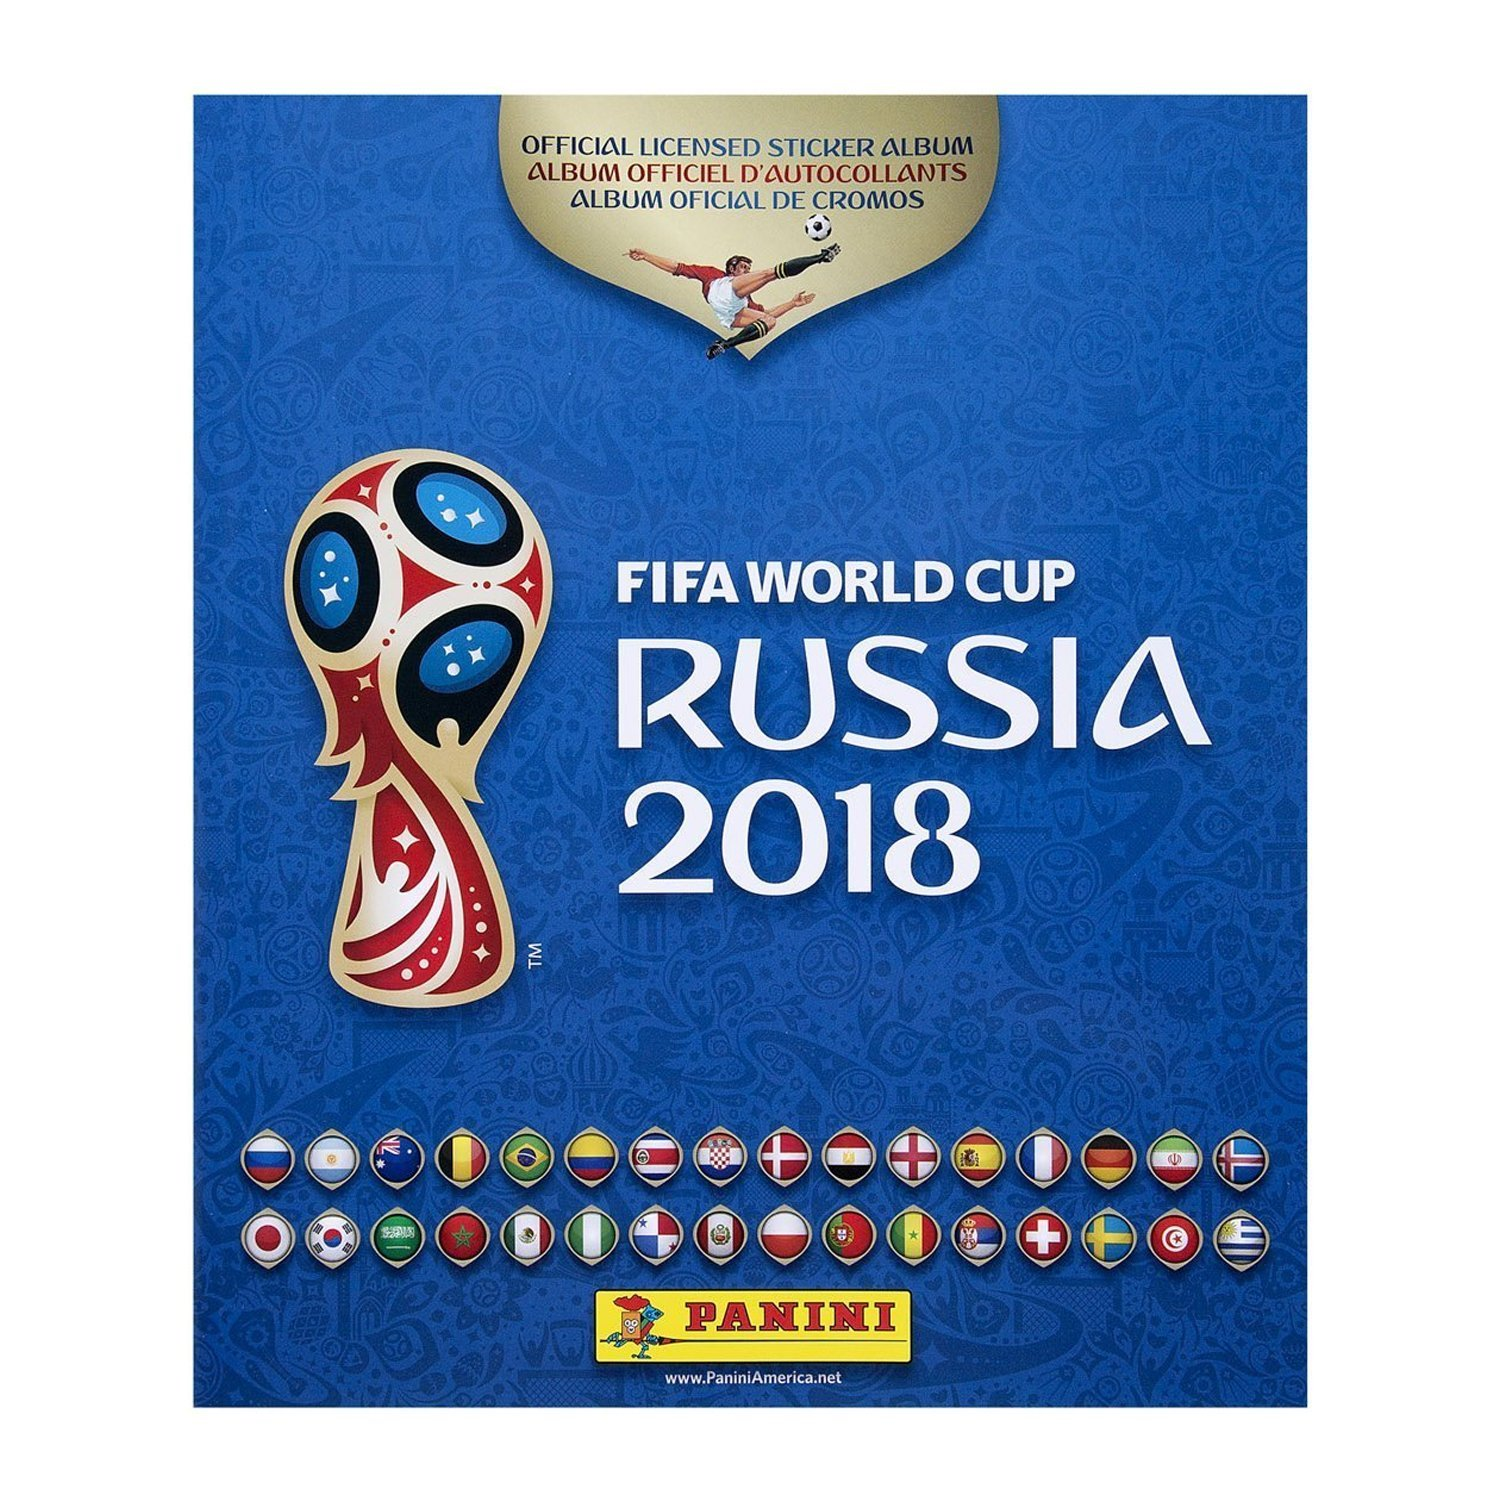 Panini 2018 FIFA World Cup Russia | 100% Completed Hard Cover Album with All the Stickers (Already Labeled)